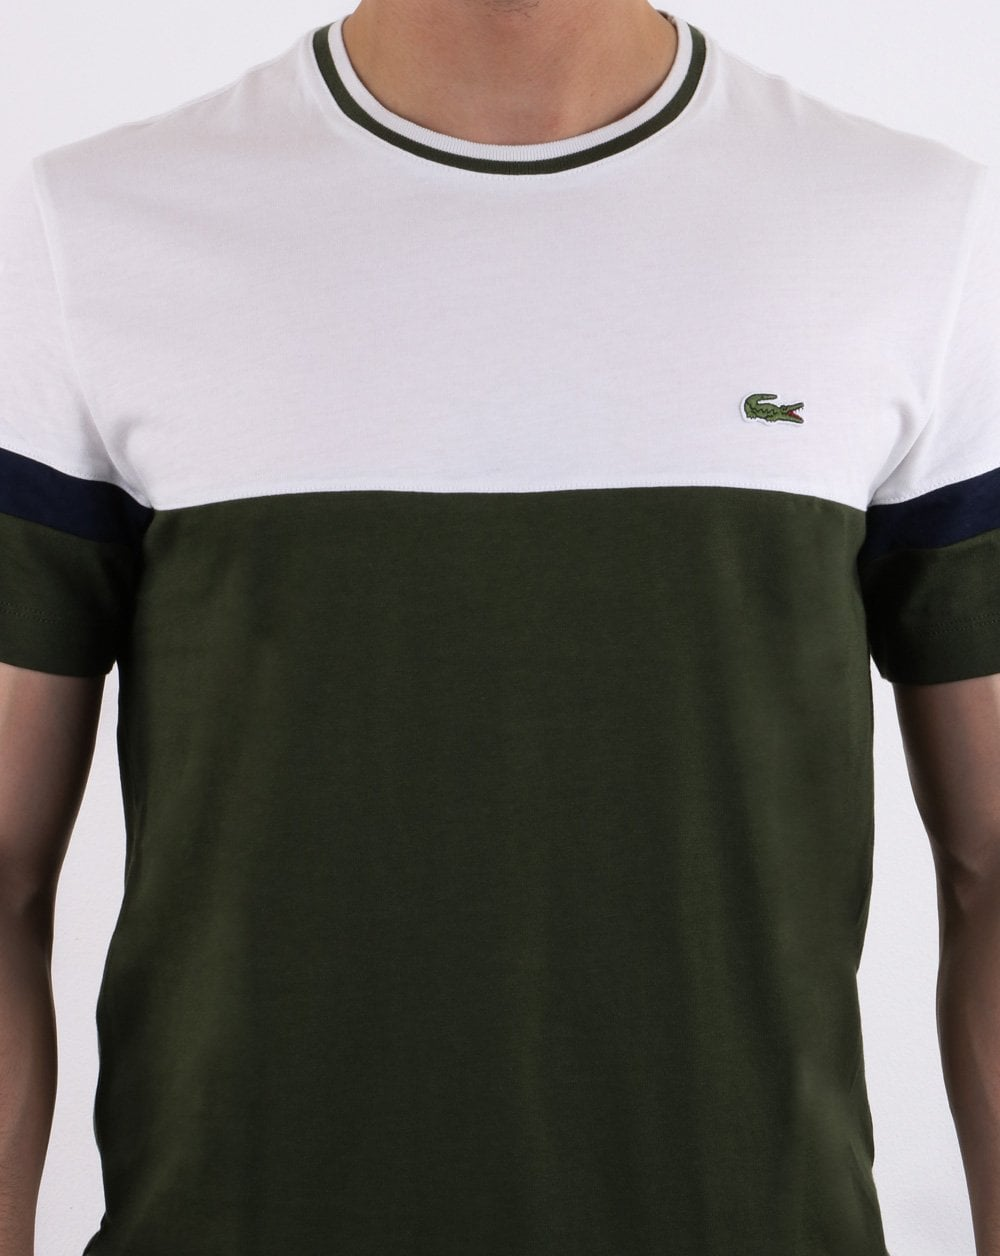 cb9ede0d Lacoste Logo T Shirt White, Olive, Navy | 80s Casual Classics